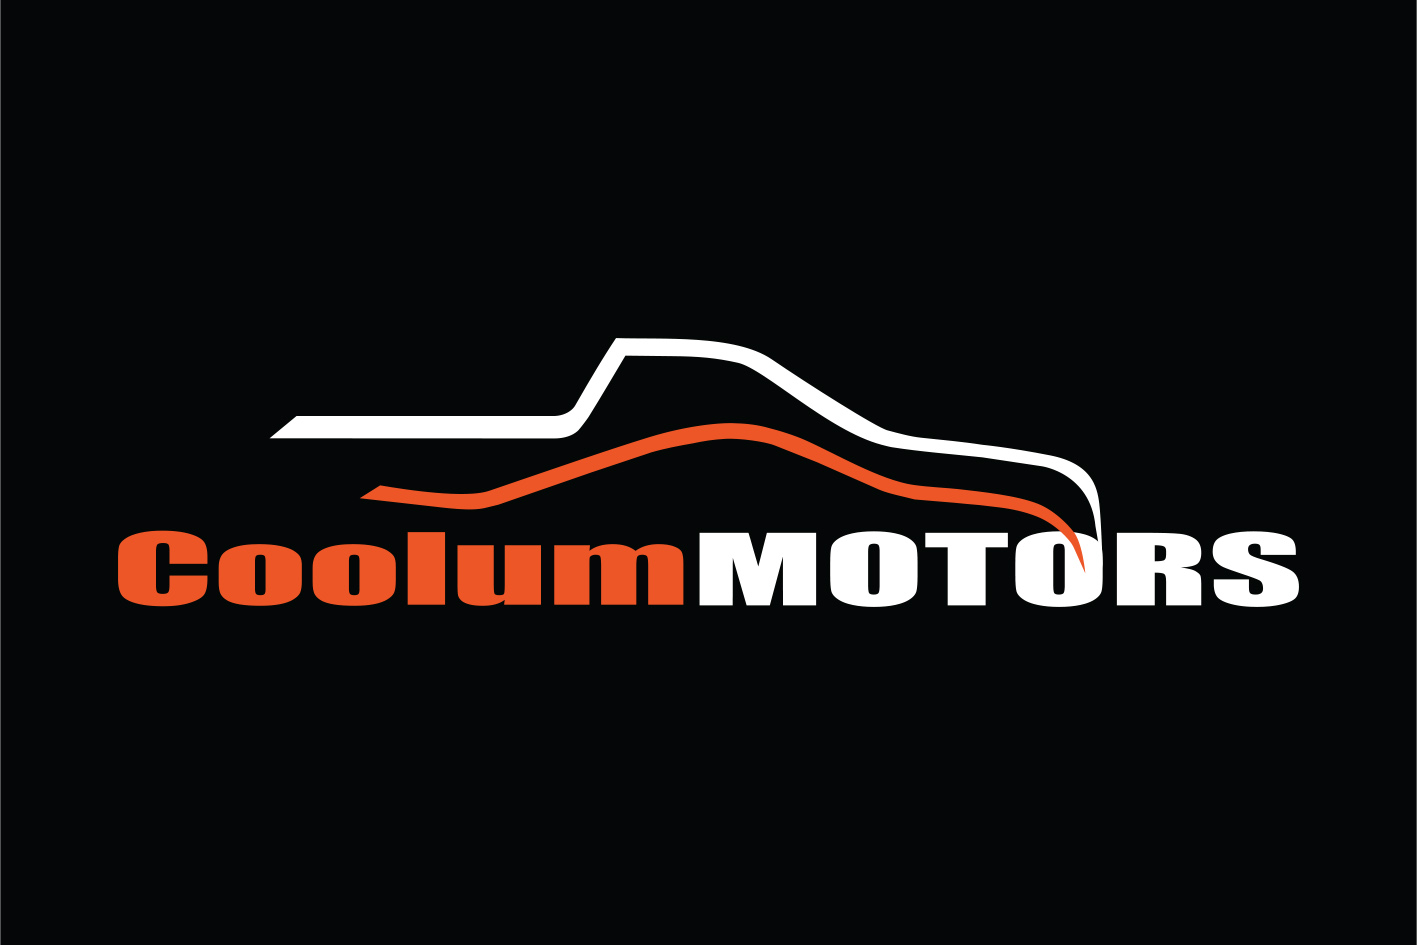 Coolum Motors Main Logo